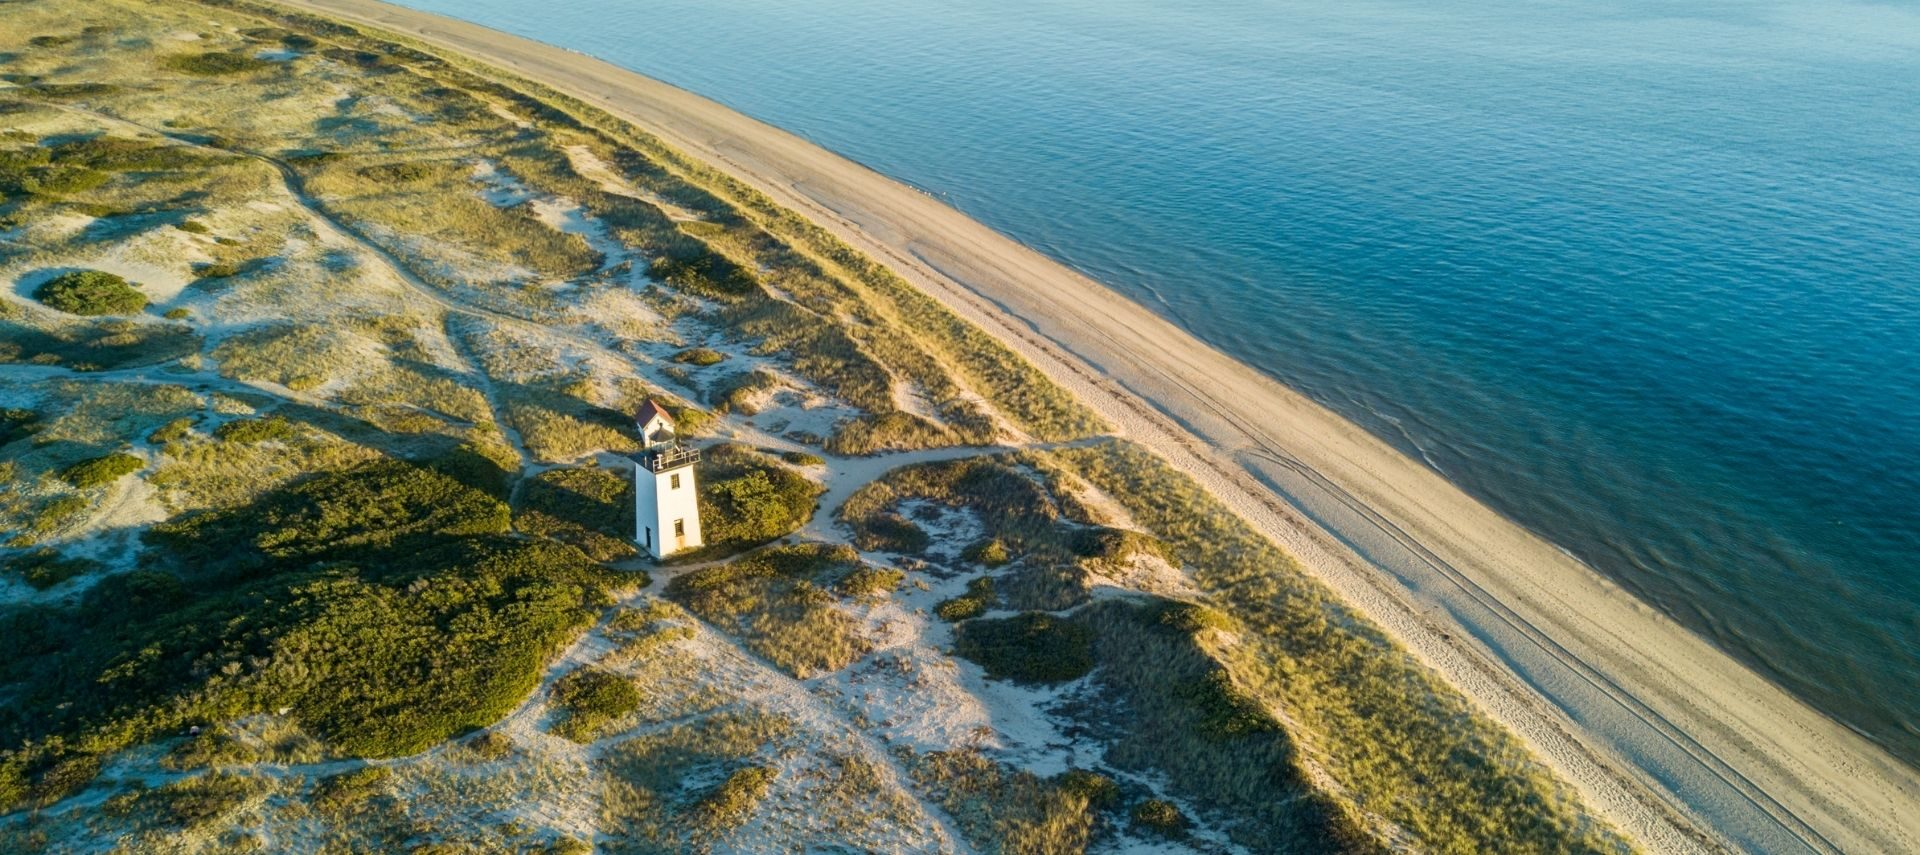 Aerial view of Cape Cod, a winding road that follows the curve of the island and the beach with a lighthouse.